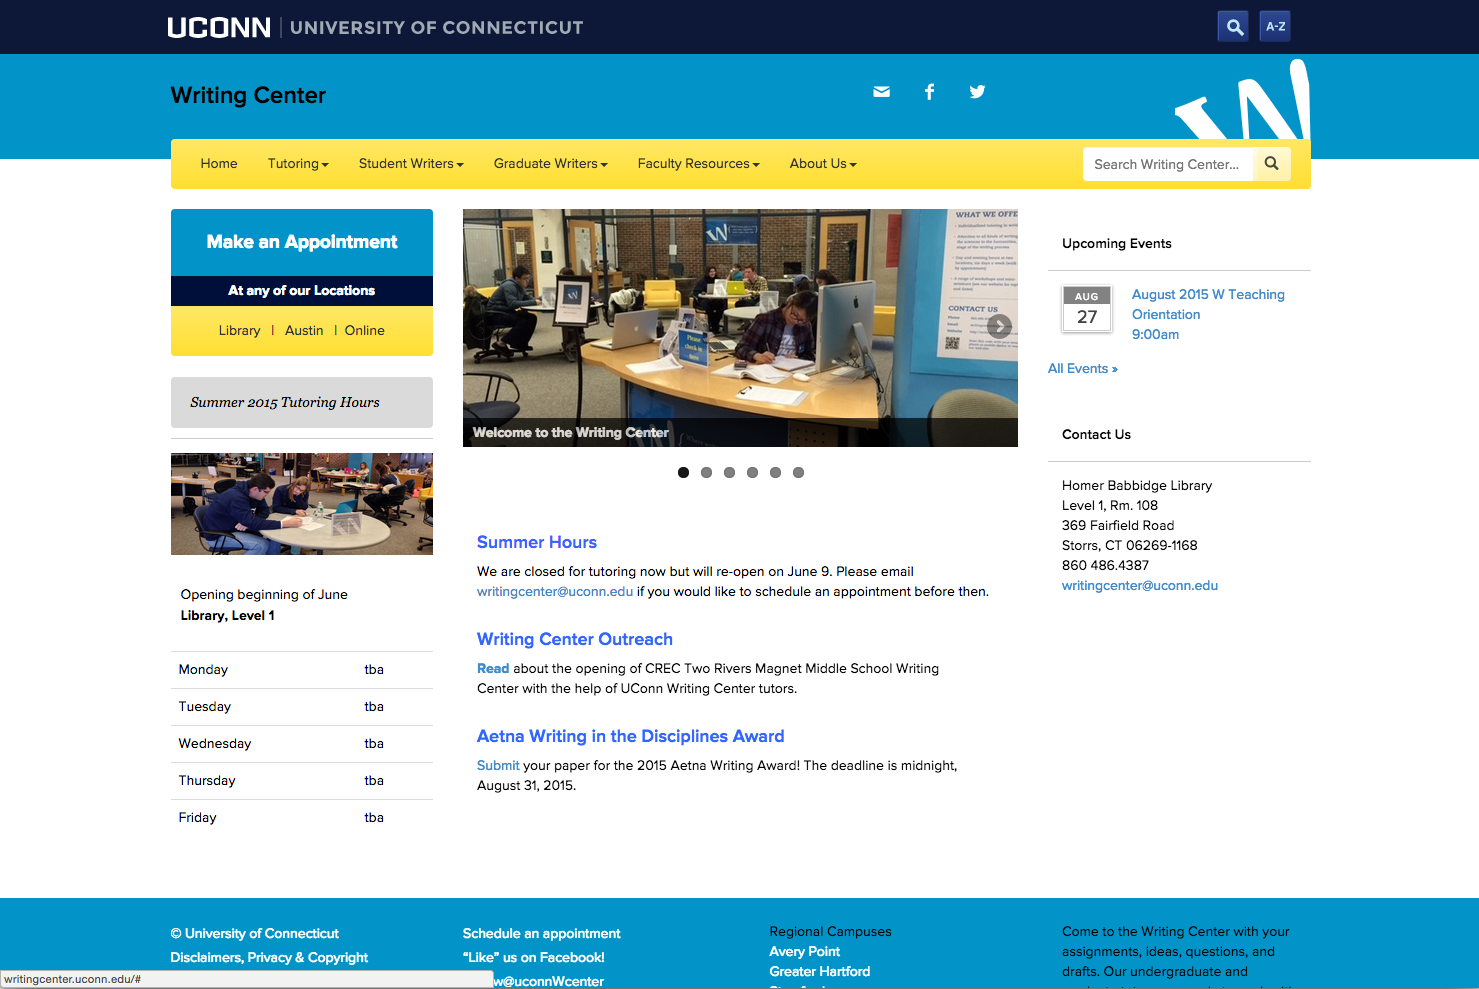 uconn writing center Find tools and resources for current uconn students such as huskyct, library information, events, academic resources, campus maps and information, and more.